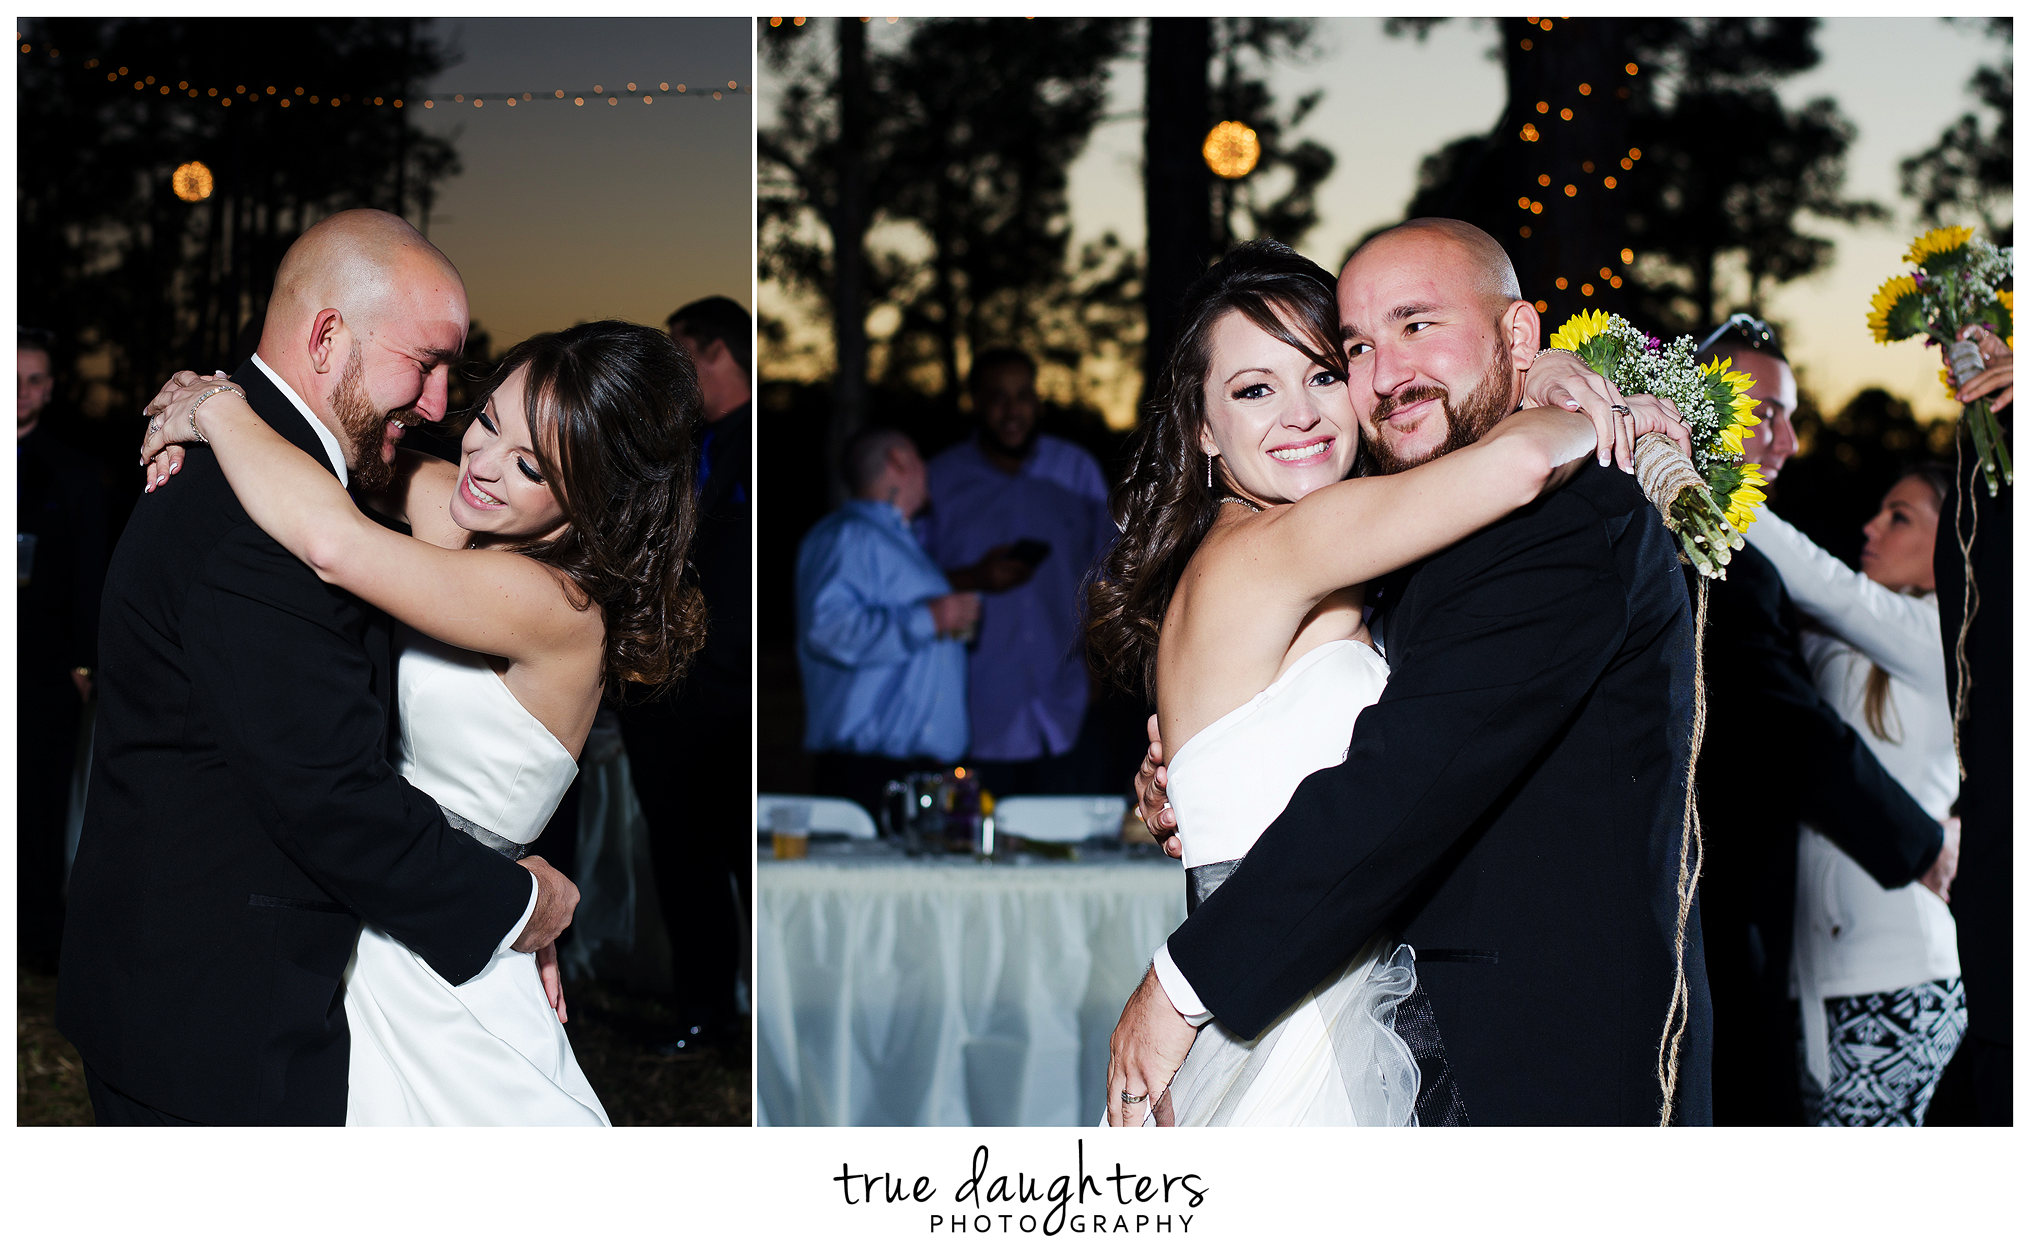 True_Daughters_Photography_Campitelli_Wedding-34.png